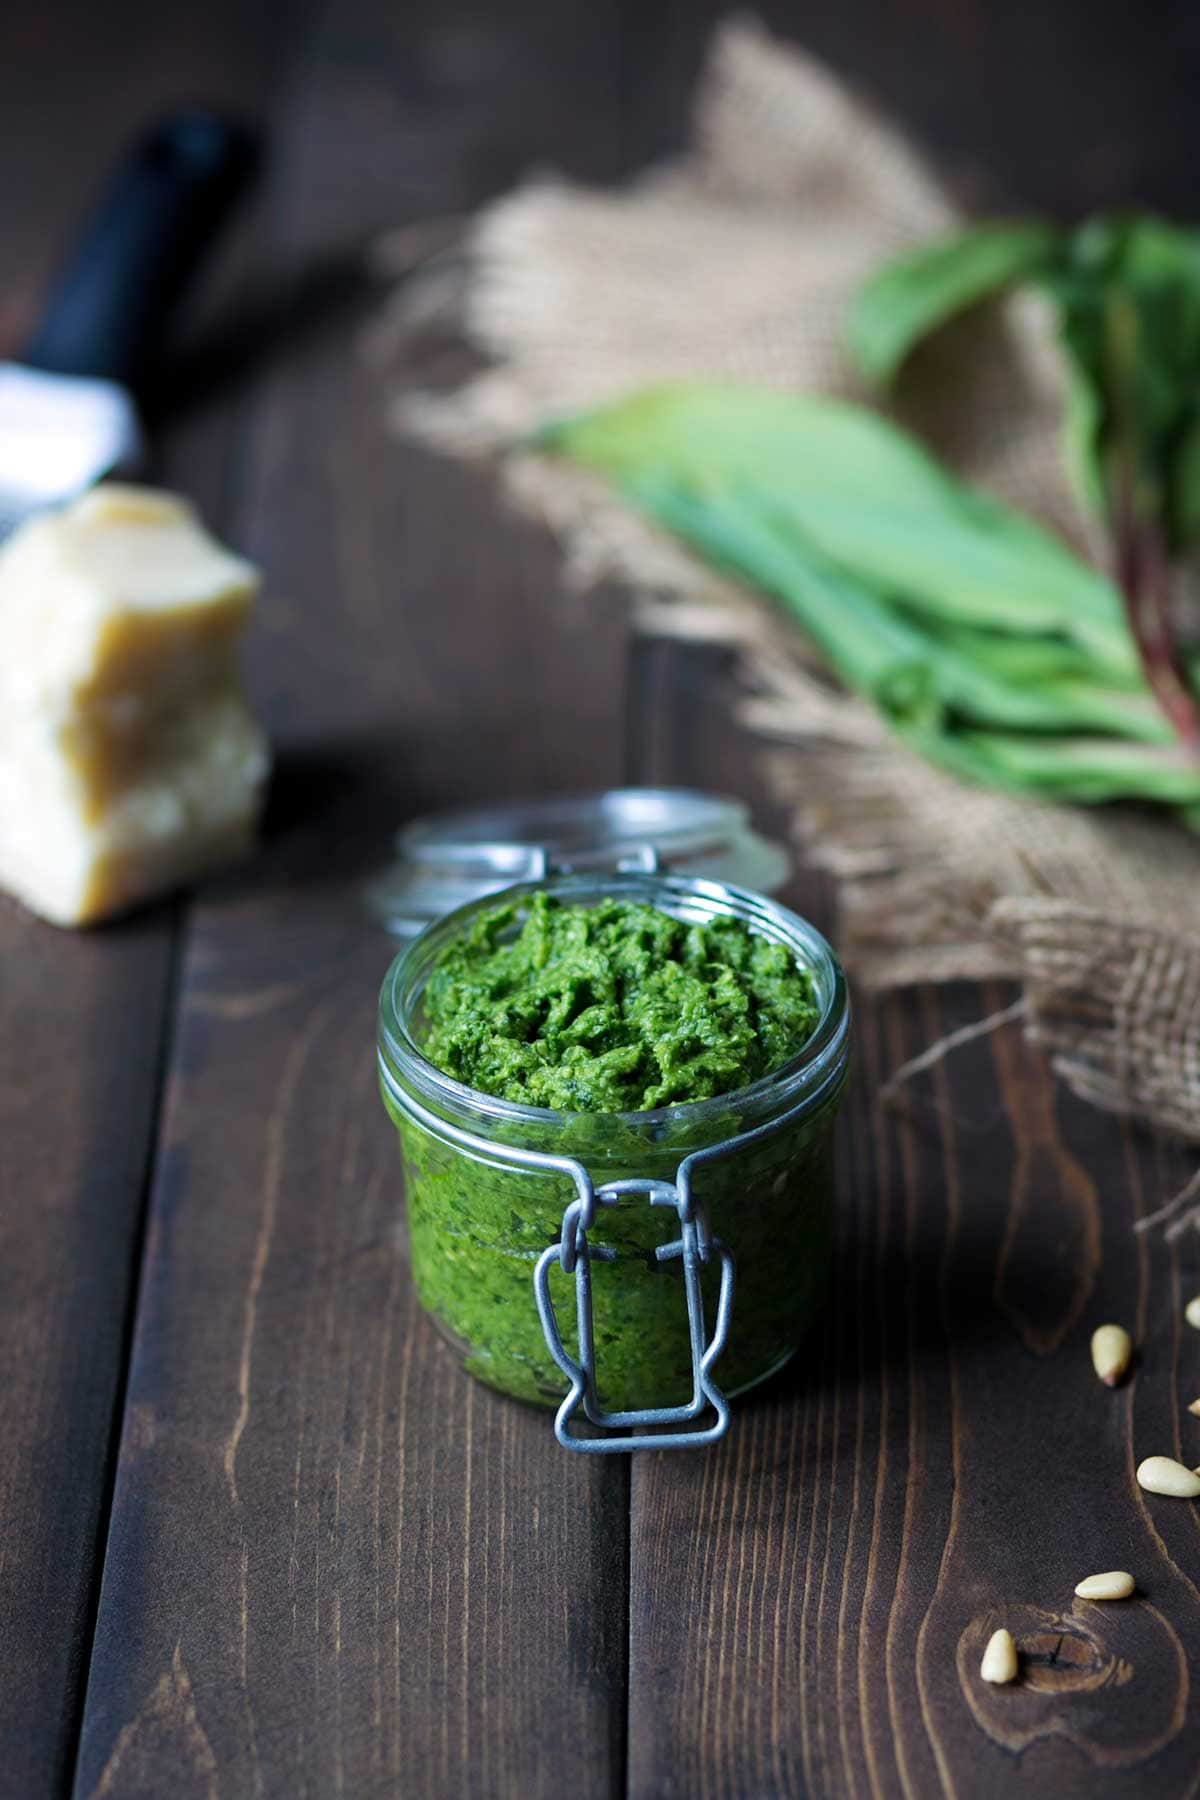 Ramp pesto recipe in a mason jar, surrounded by pesto ingredients including parmesan cheese, pine nuts, and ramps.